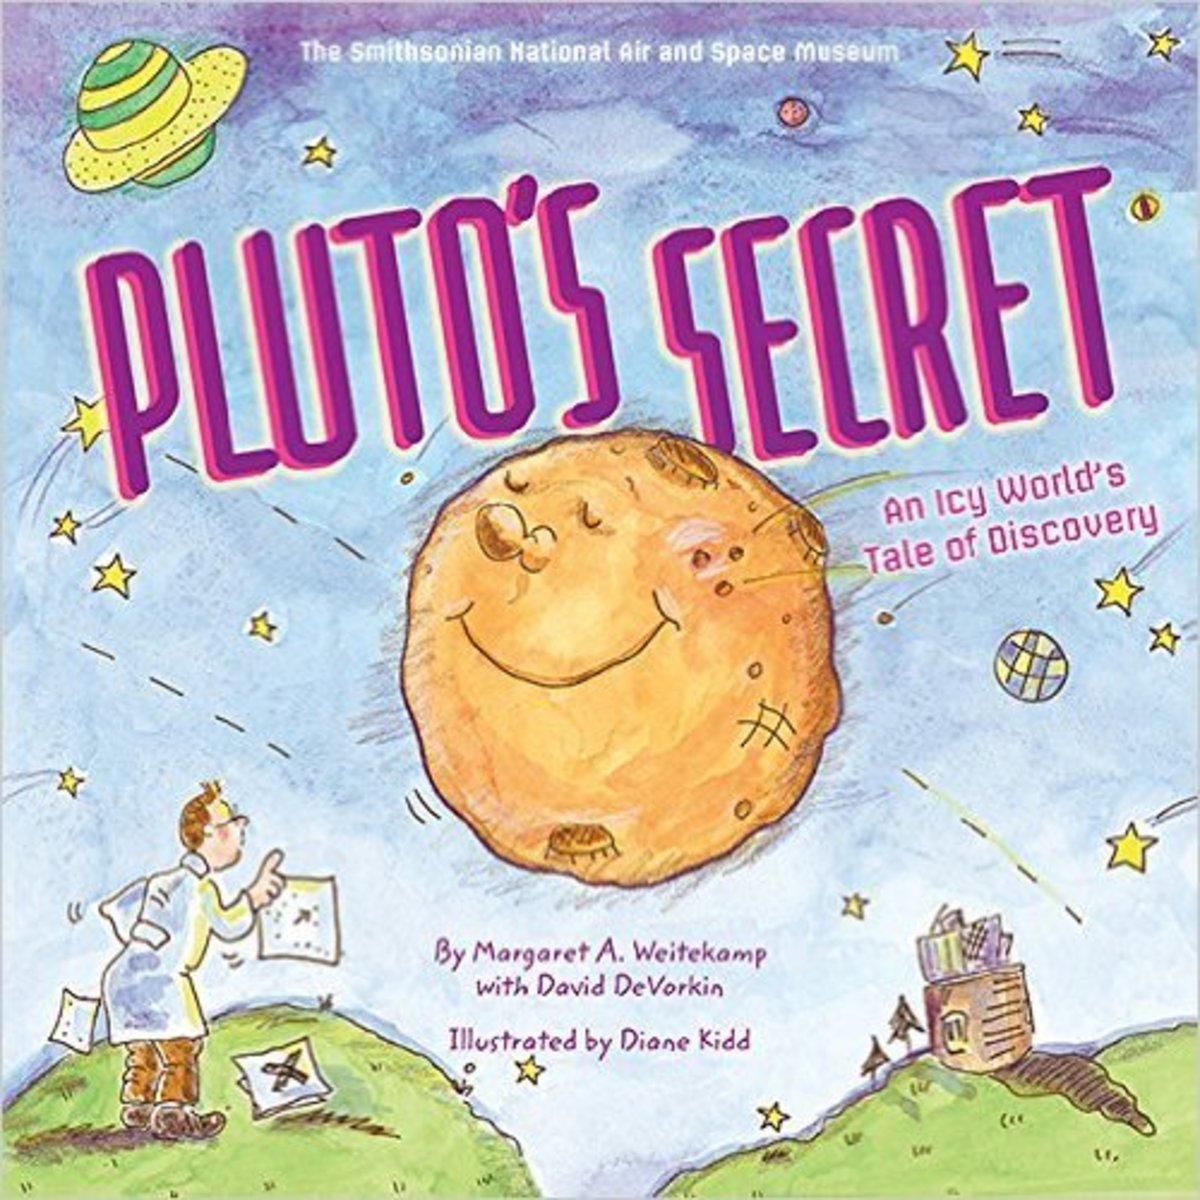 Pluto's Secret: An Icy World's Tale of Discovery by Margaret Weitekamp - Book Images are from amazon.com.